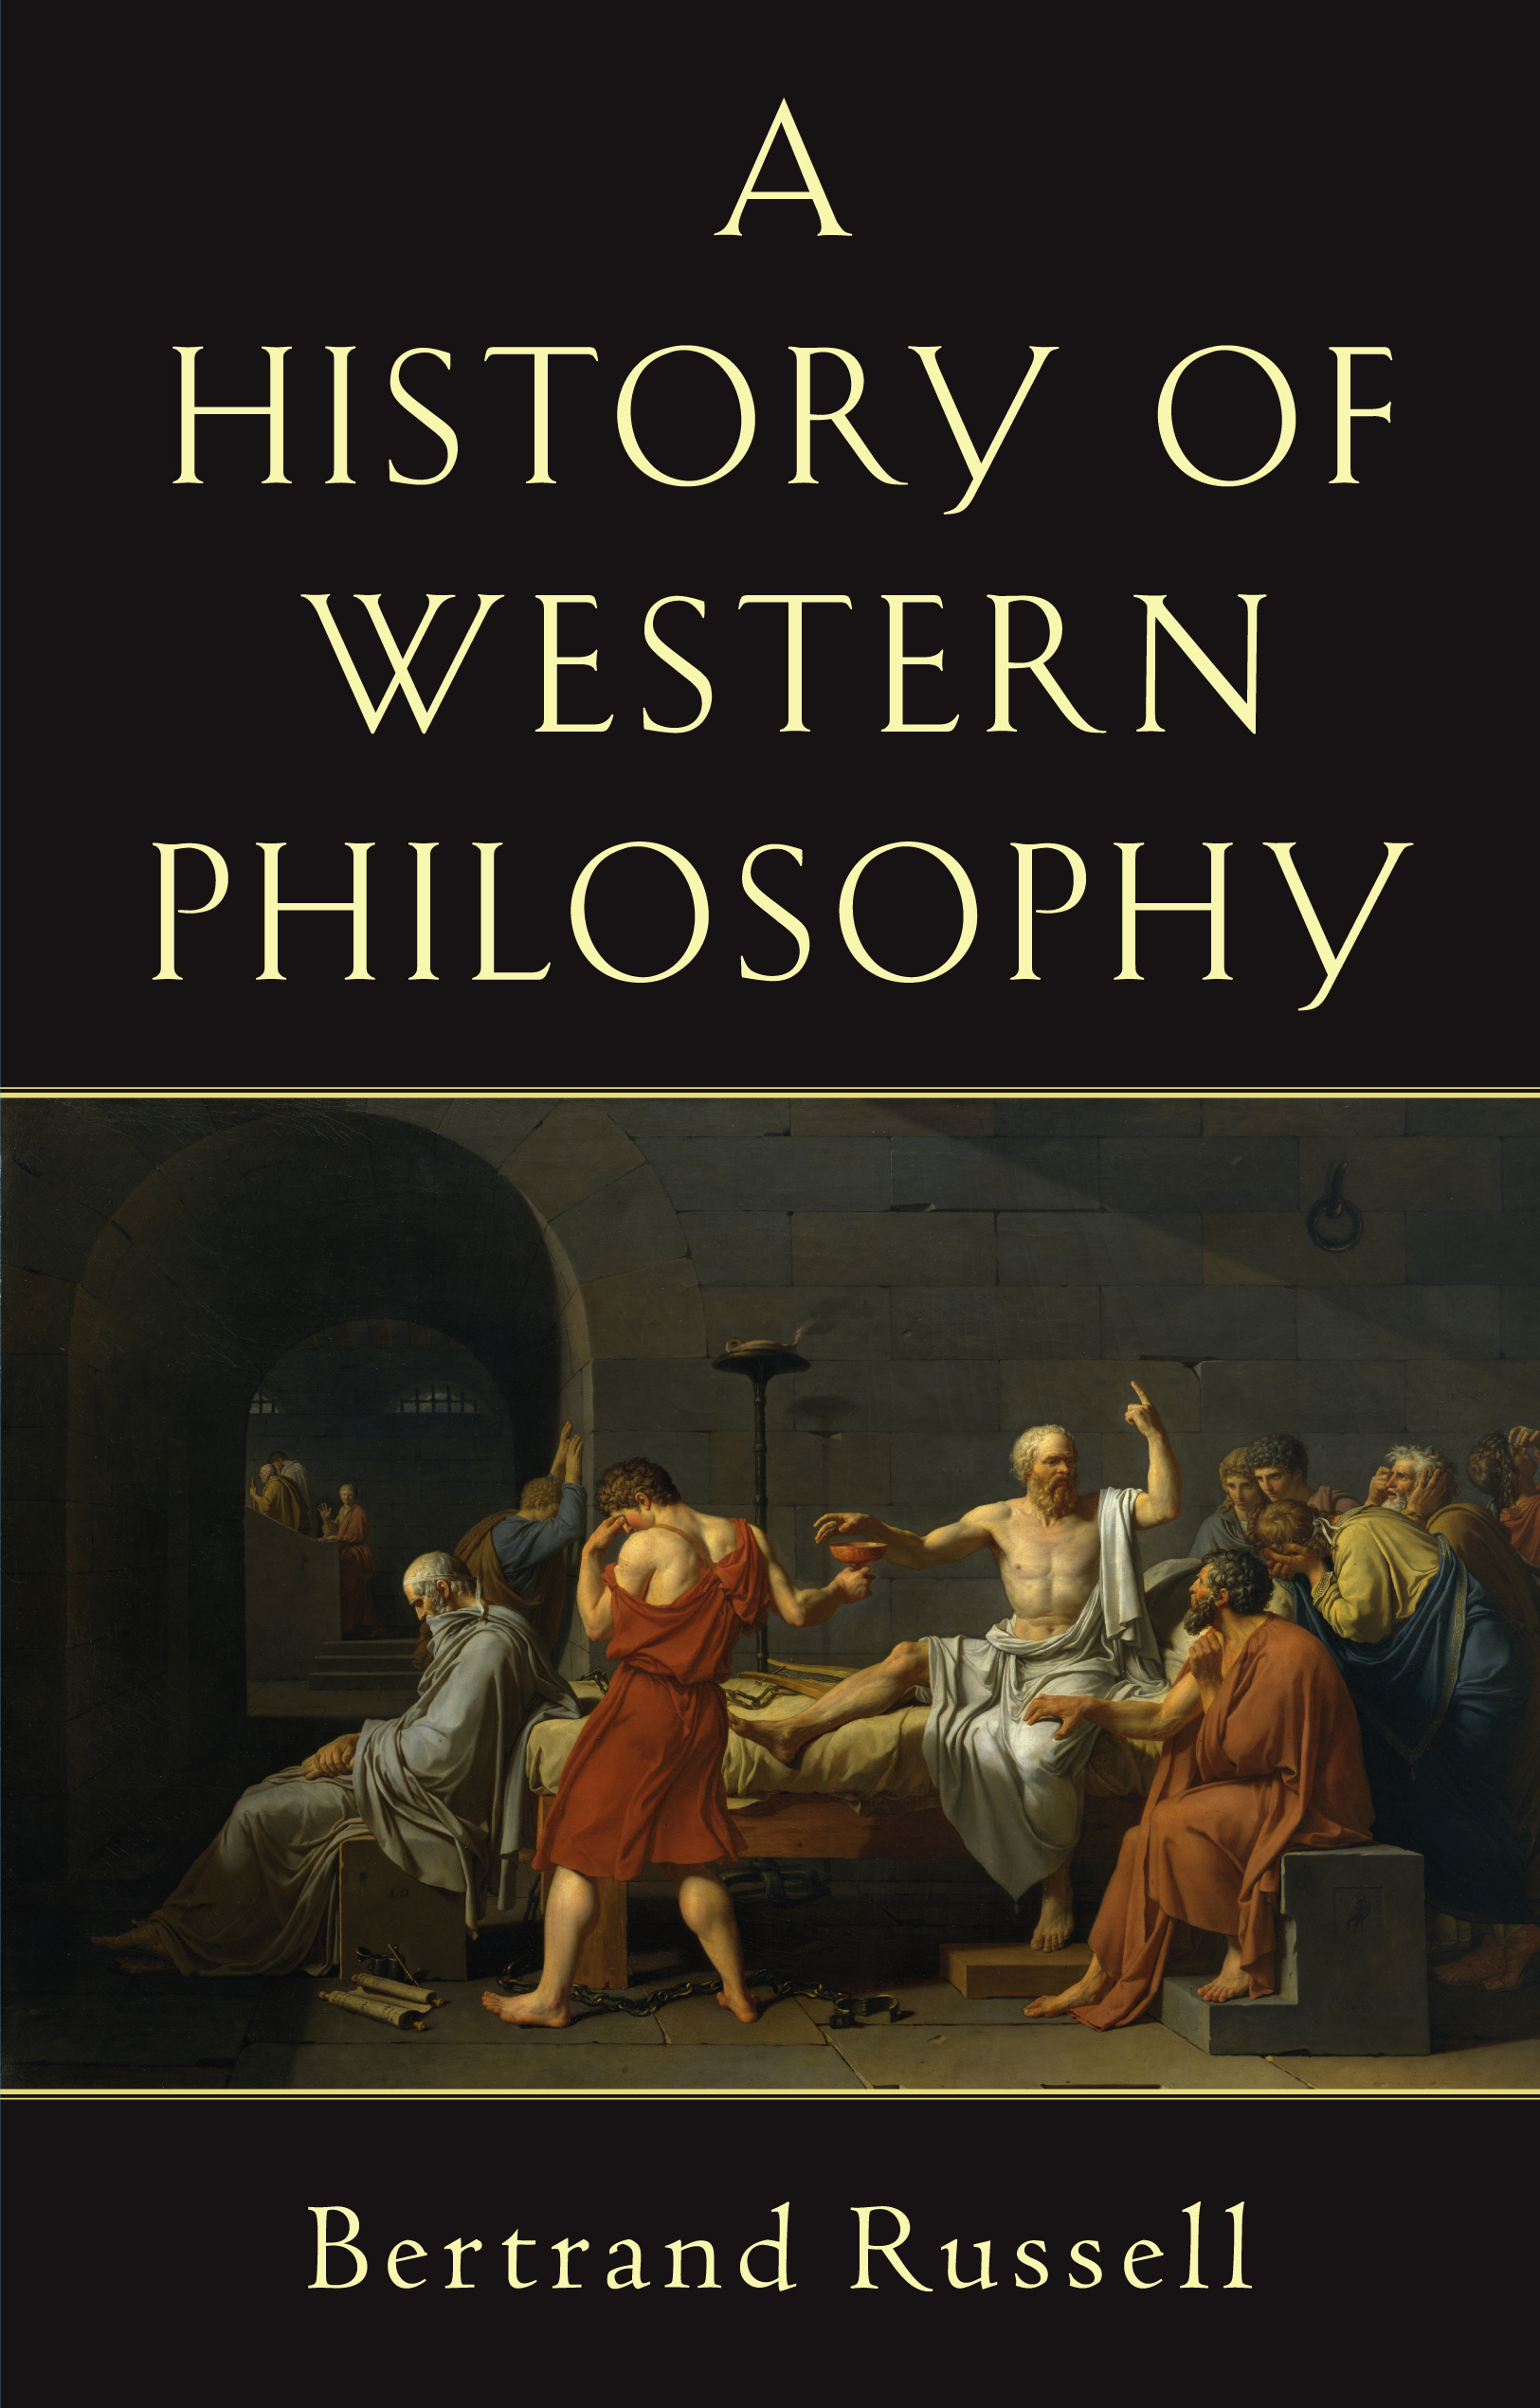 History of western philosophy book by bertrand russell official history of western philosophy book by bertrand russell official publisher page simon schuster fandeluxe Image collections